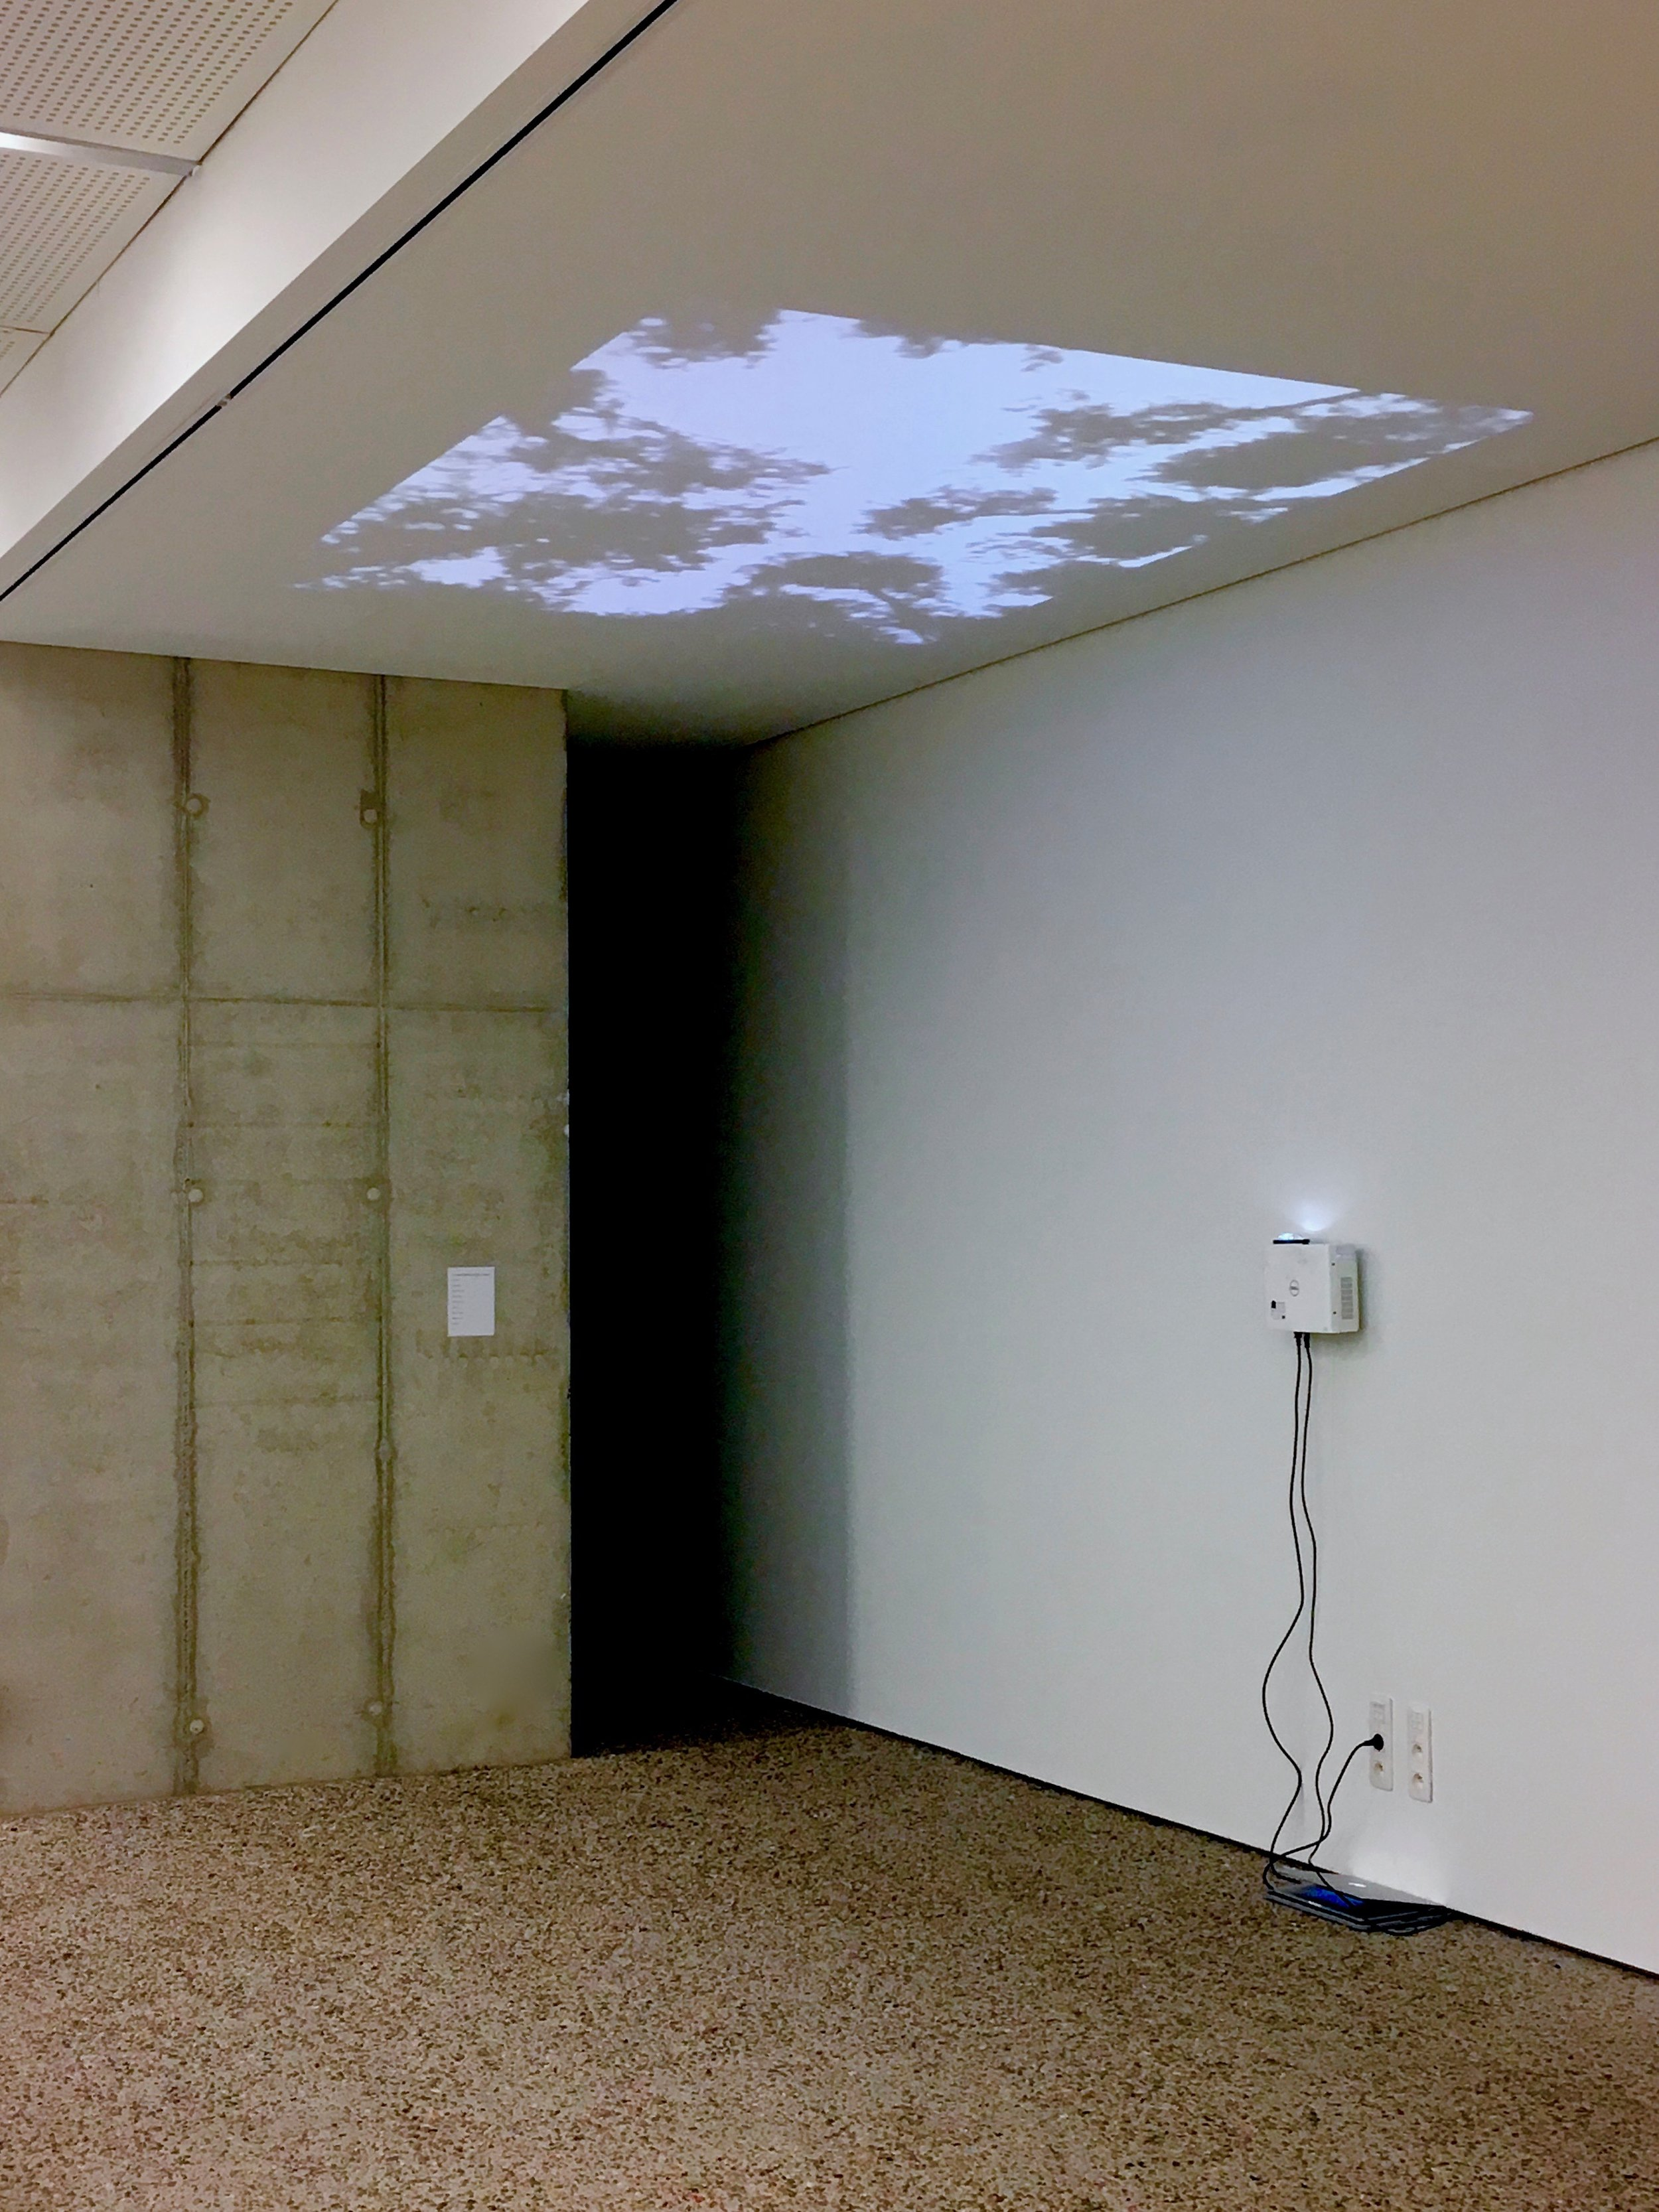 Two Hundred and Sixty-nine Steps, Looking Up (installation view)